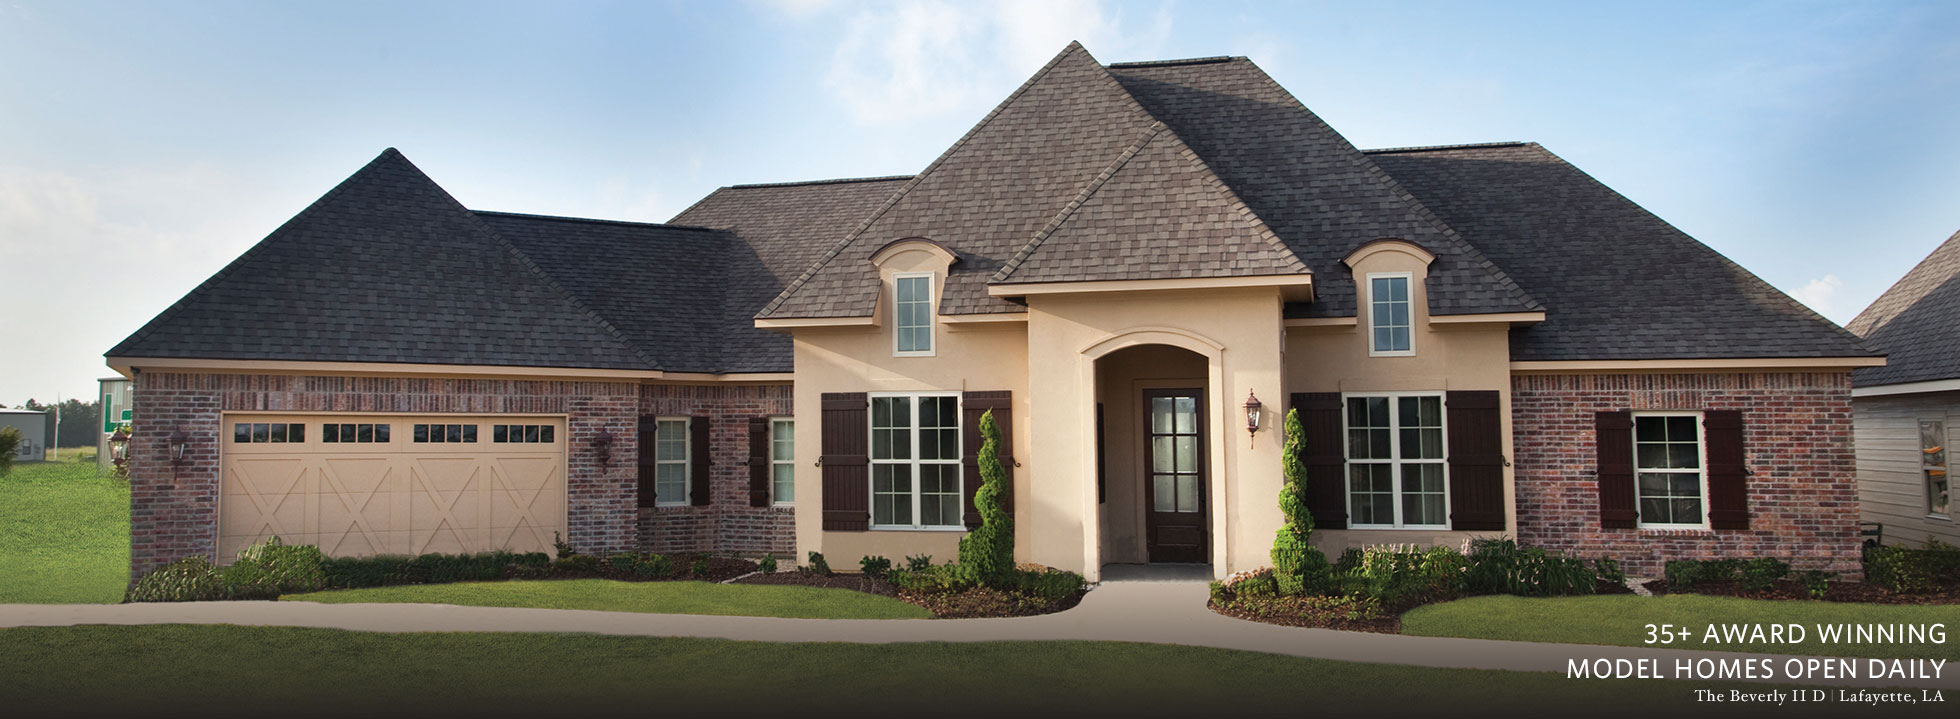 Mississippi Custom Home Builder  New Home Building Plans     Mississippi Custom Home Builder  New Home Building Plans     Schumacher Homes